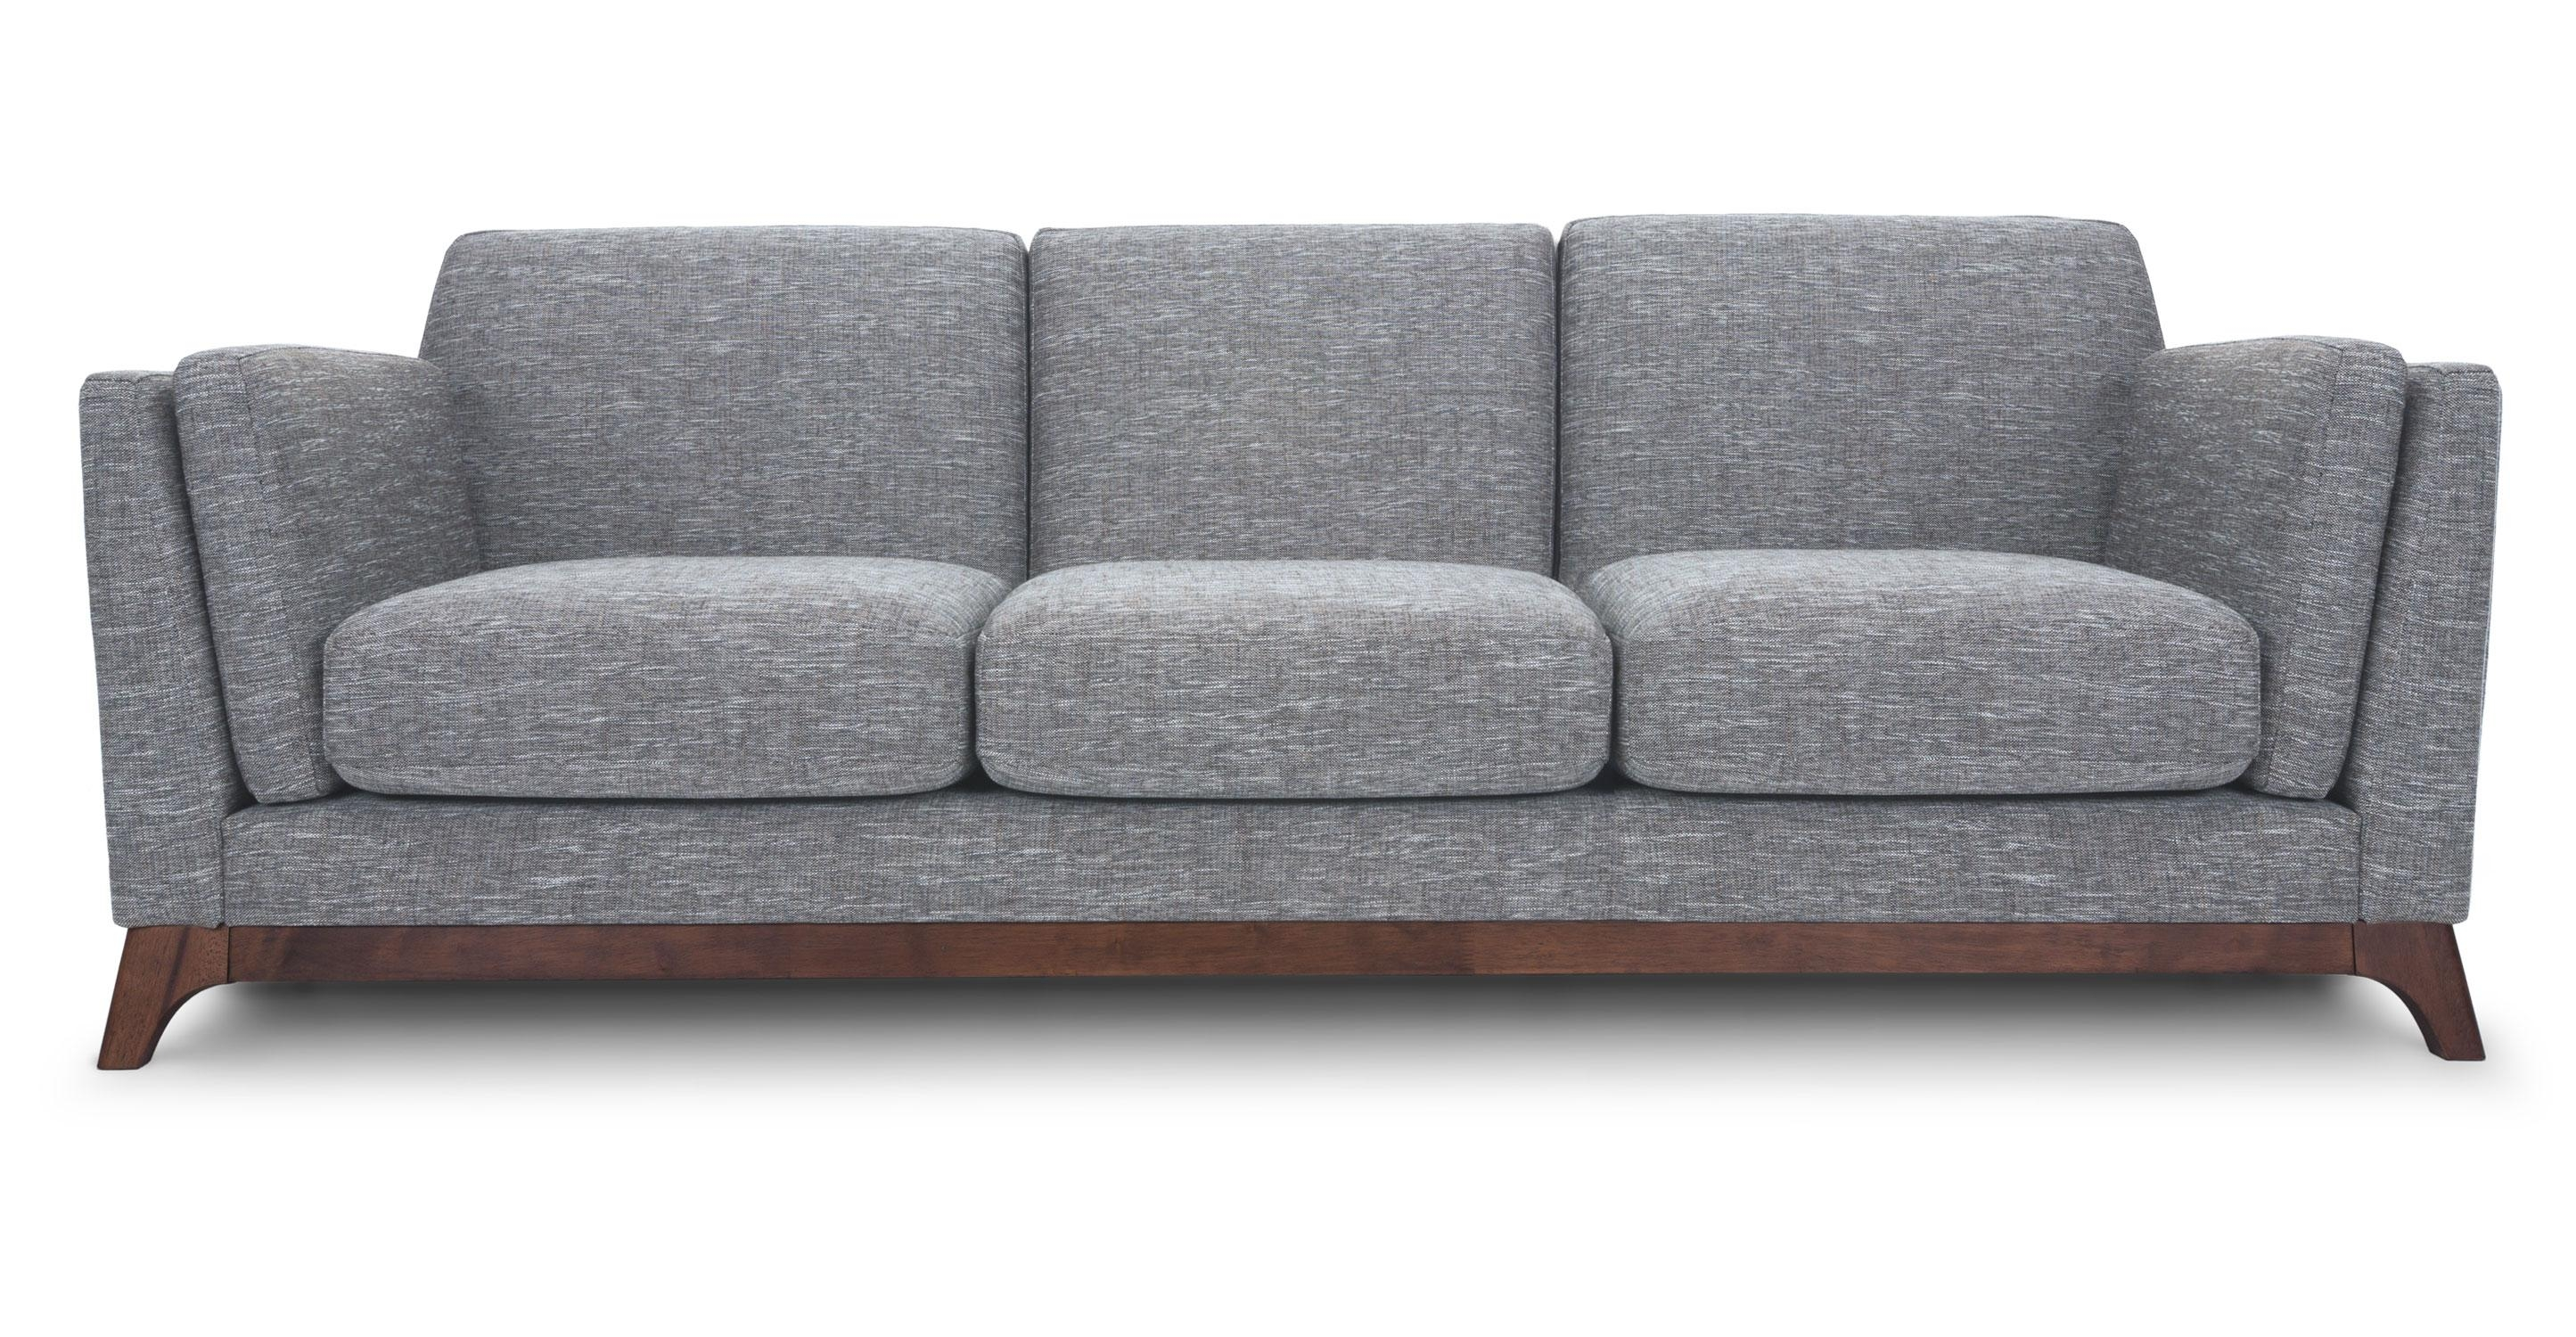 Sofas Center : Cheap Gray Sofa Outstanding Pictures Inspirations Inside Grey Sofa Chairs (Image 19 of 20)